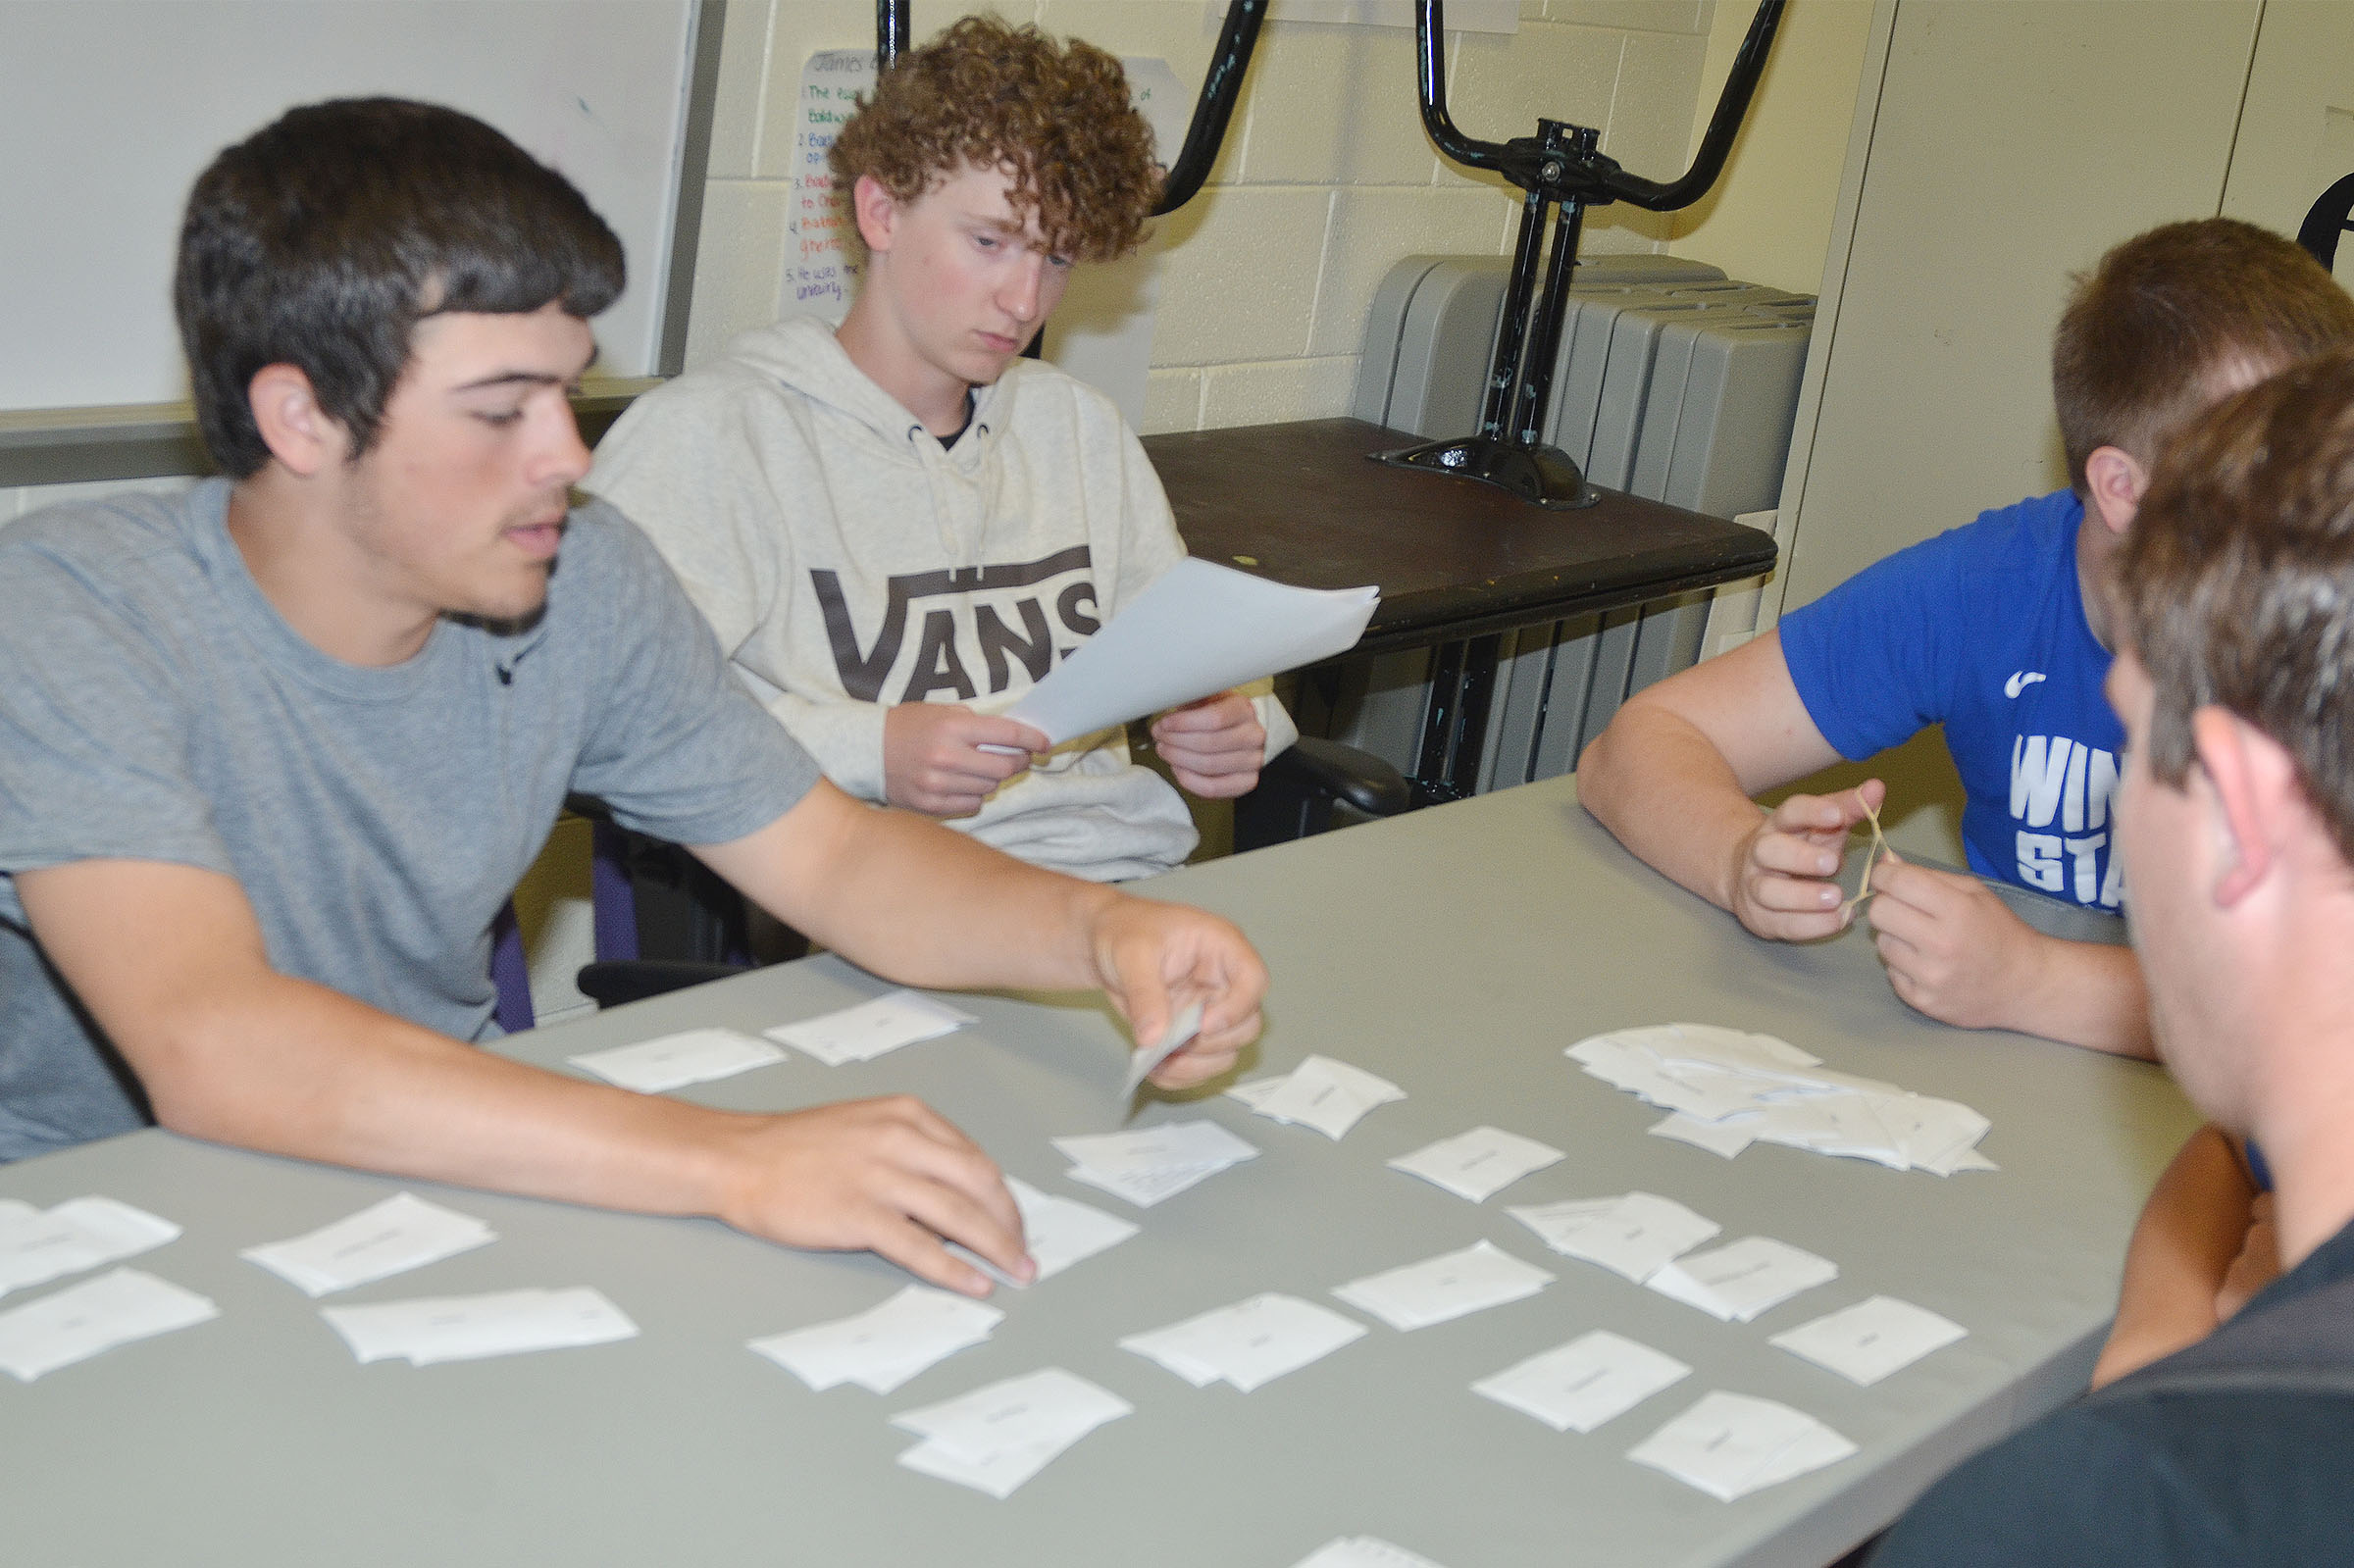 CHS sophomores Ryan Kearney, at left, and Jackson Hinton work with their classmates to pair their poetry terms with the definitions.